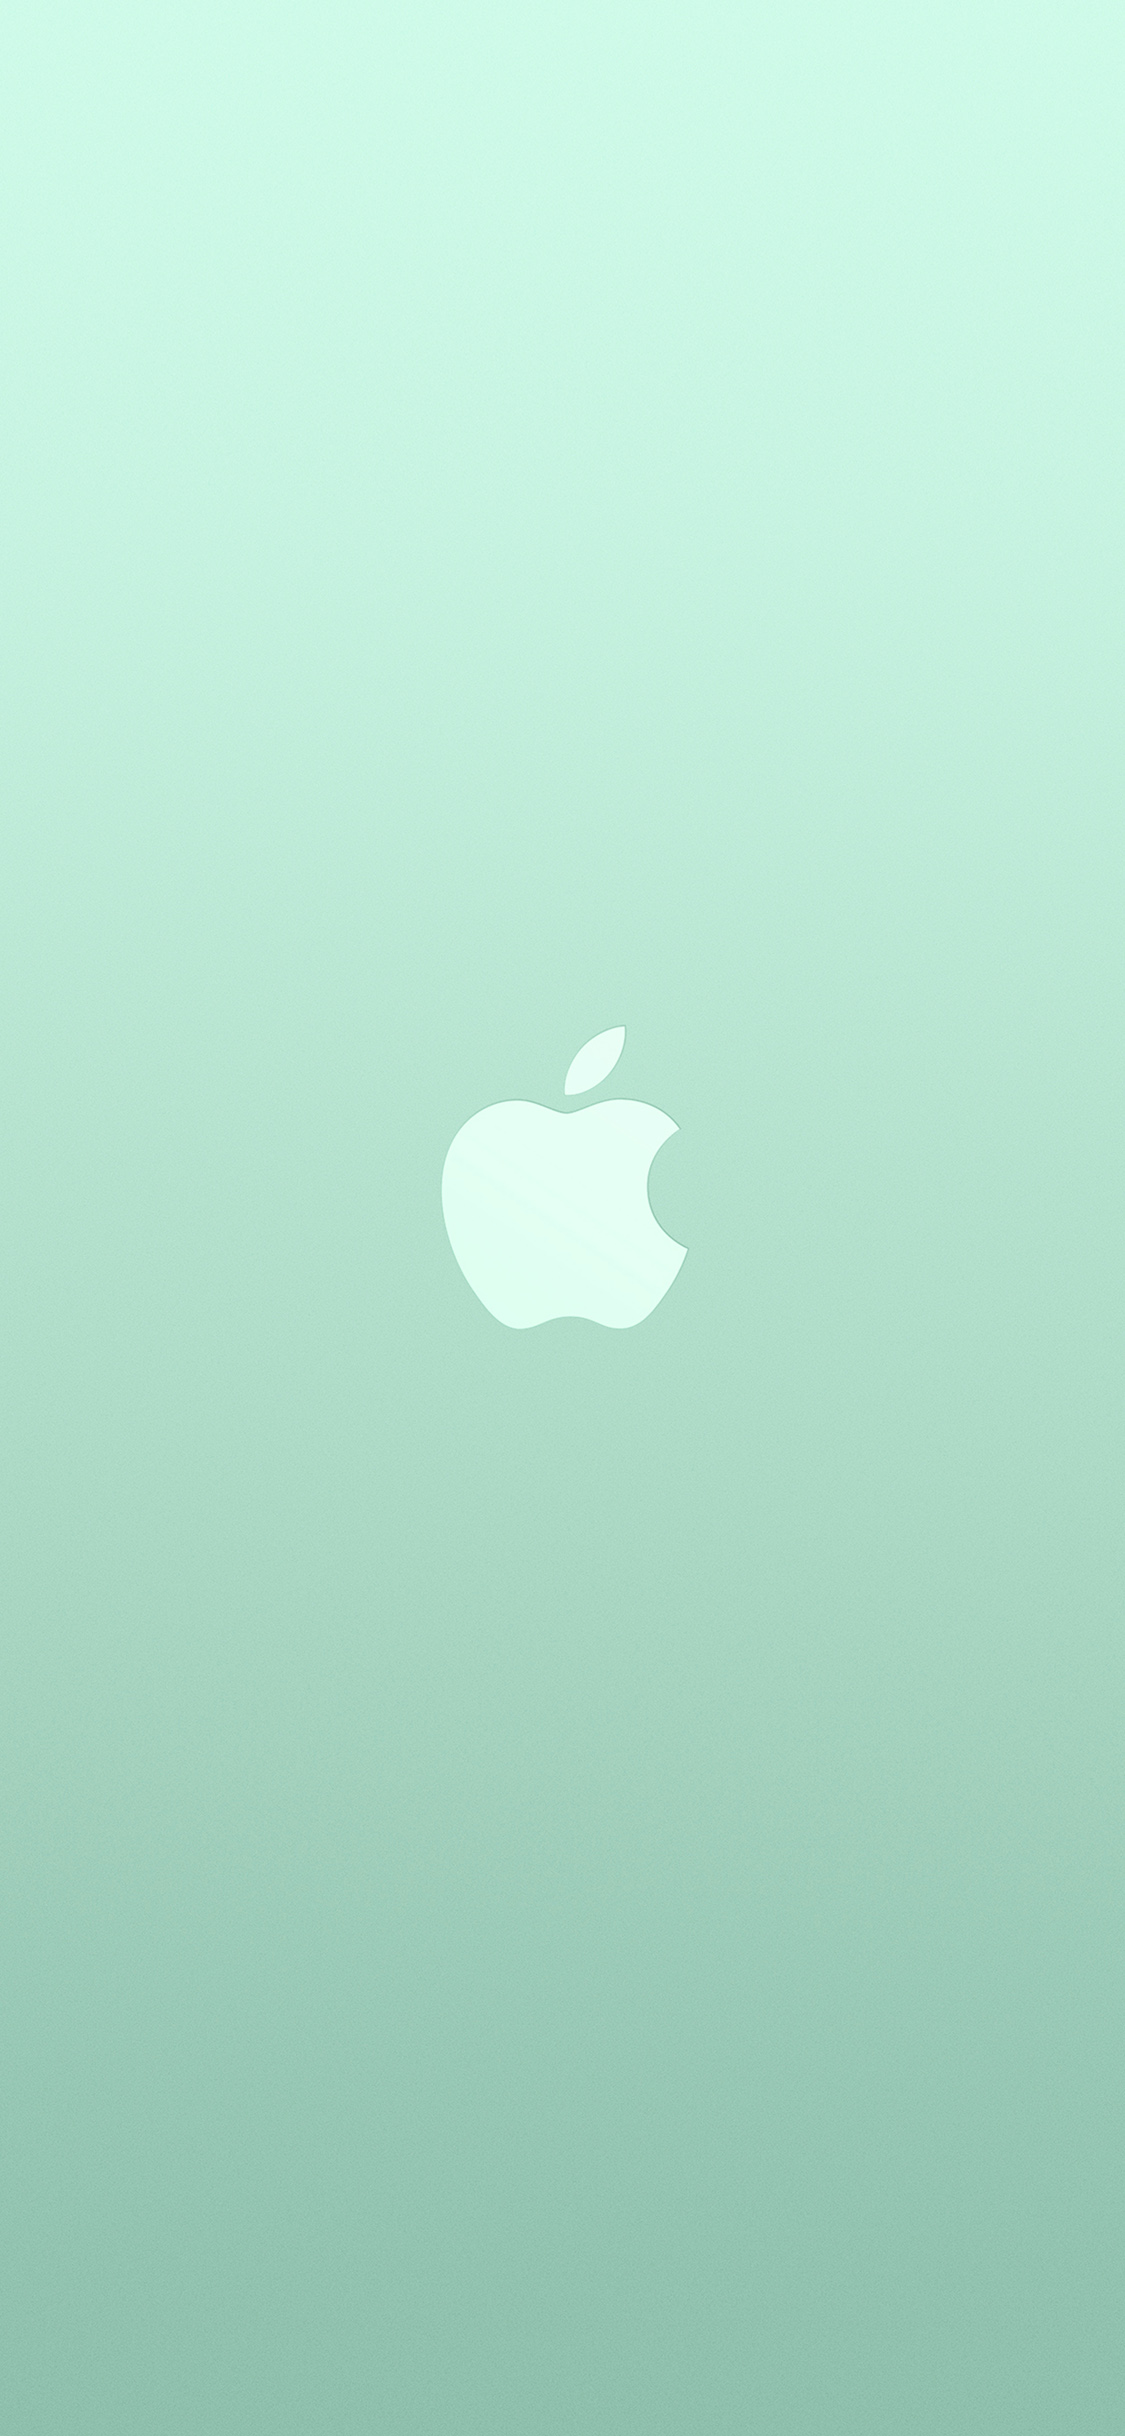 iPhonexpapers.com-Apple-iPhone-wallpaper-au17-logo-apple-green-white-minimal-illustration-art